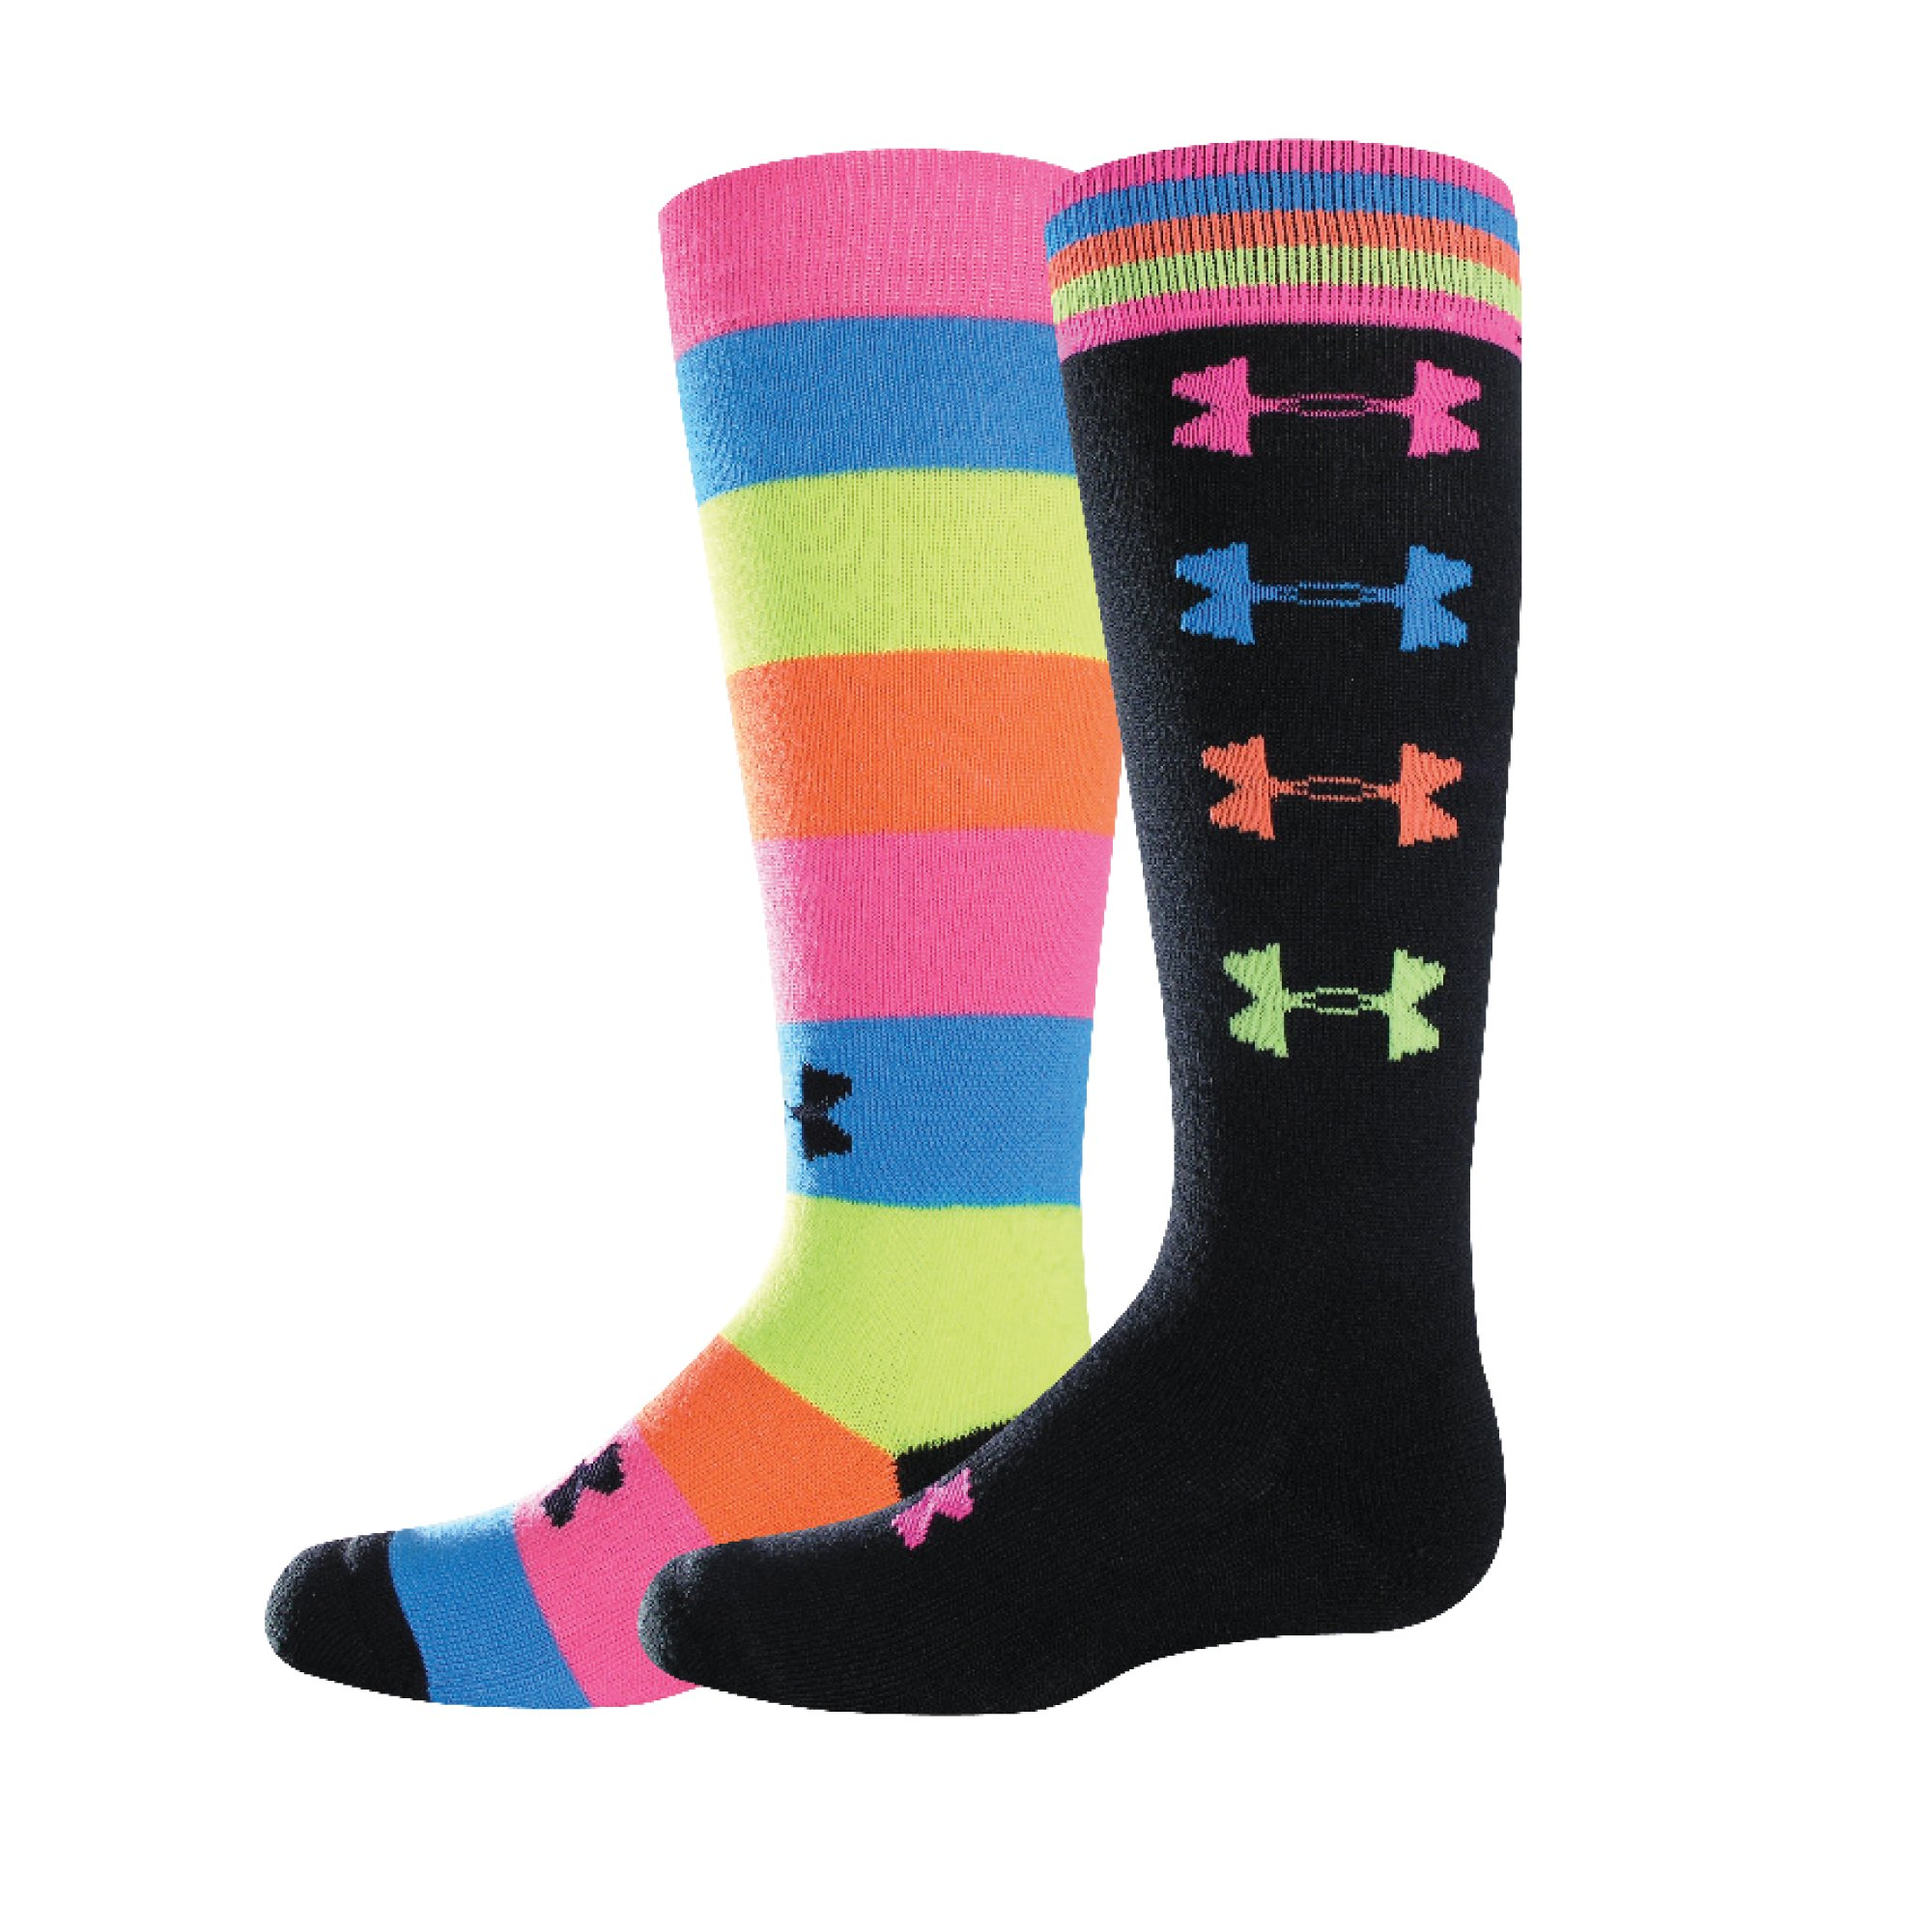 Girls' Recur OTC Socks, Black